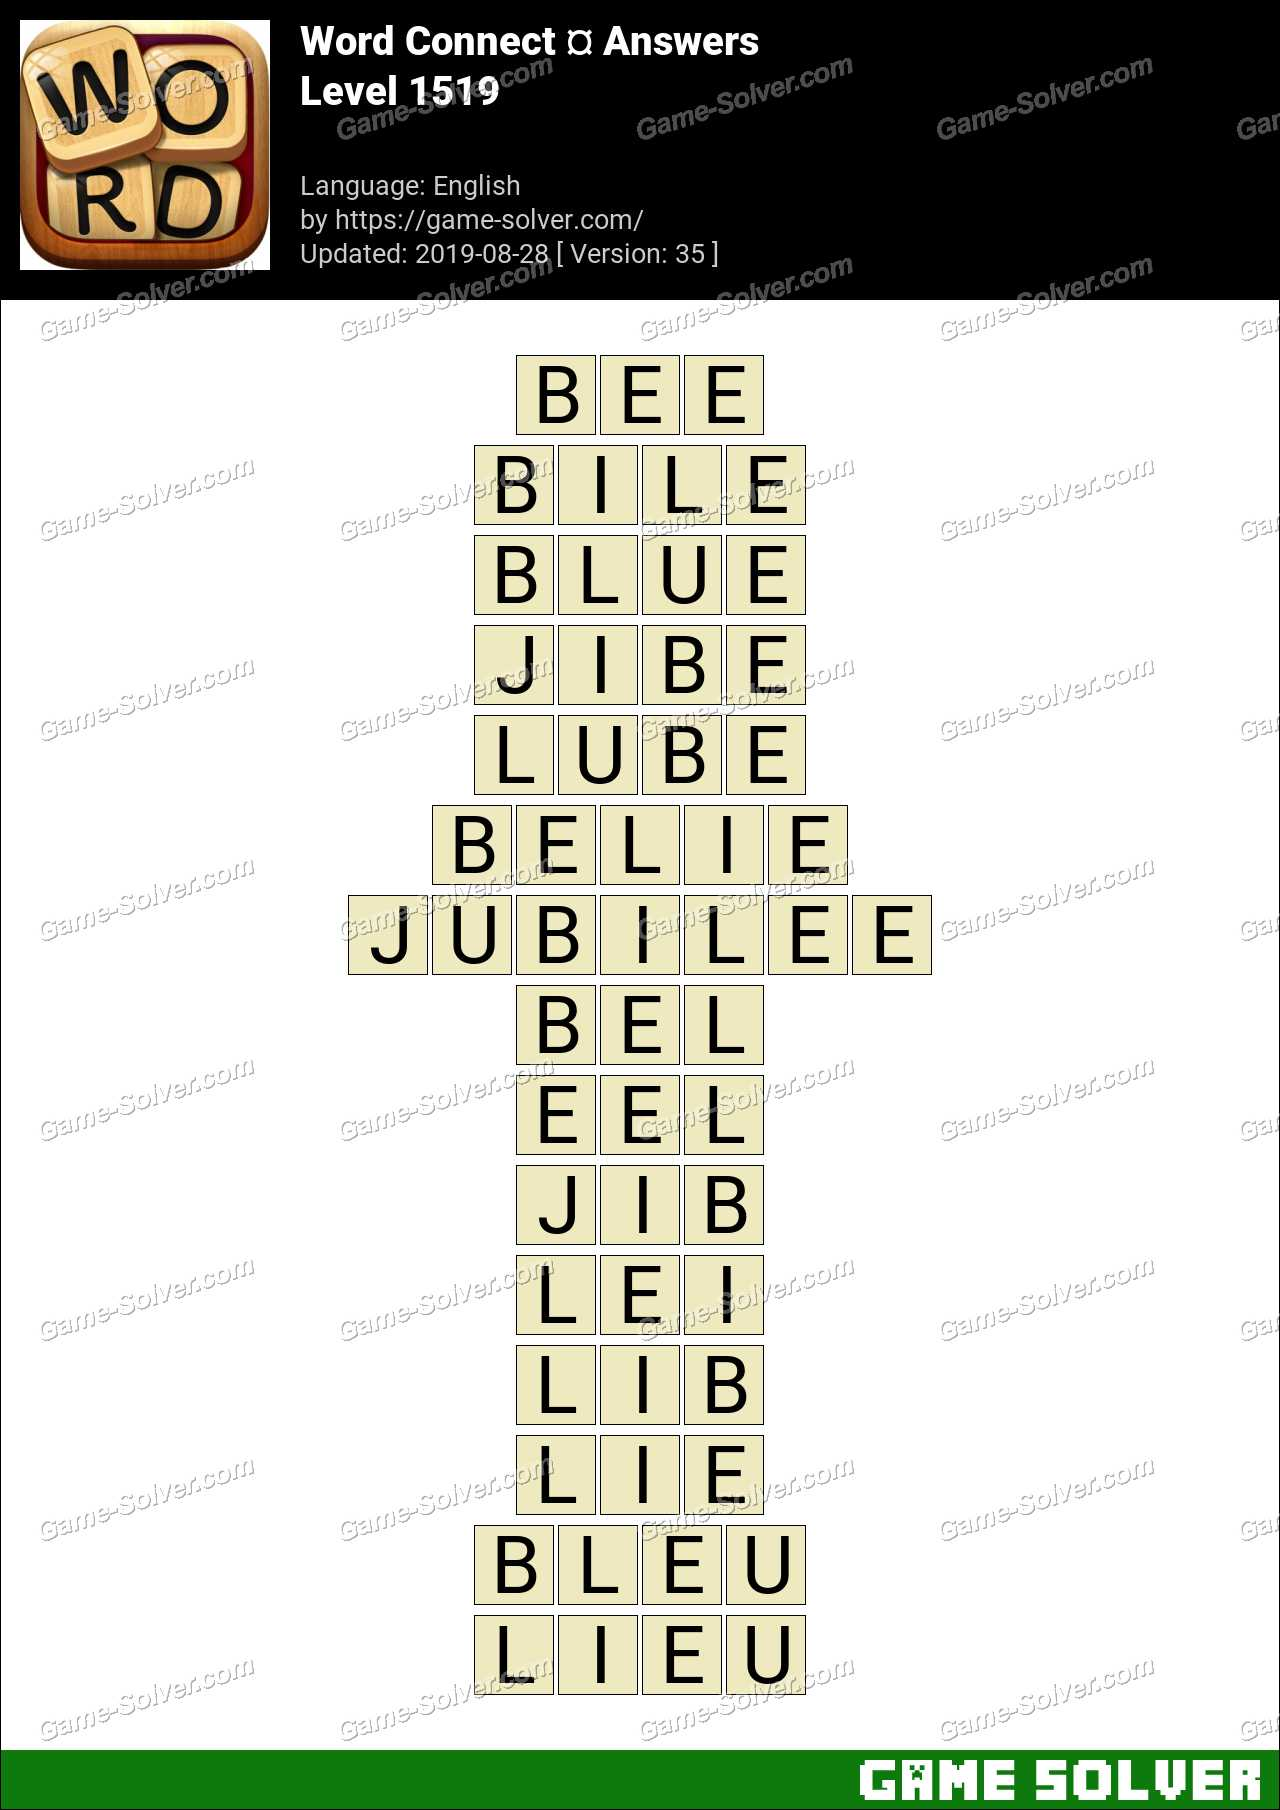 Word Connect Level 1519 Answers